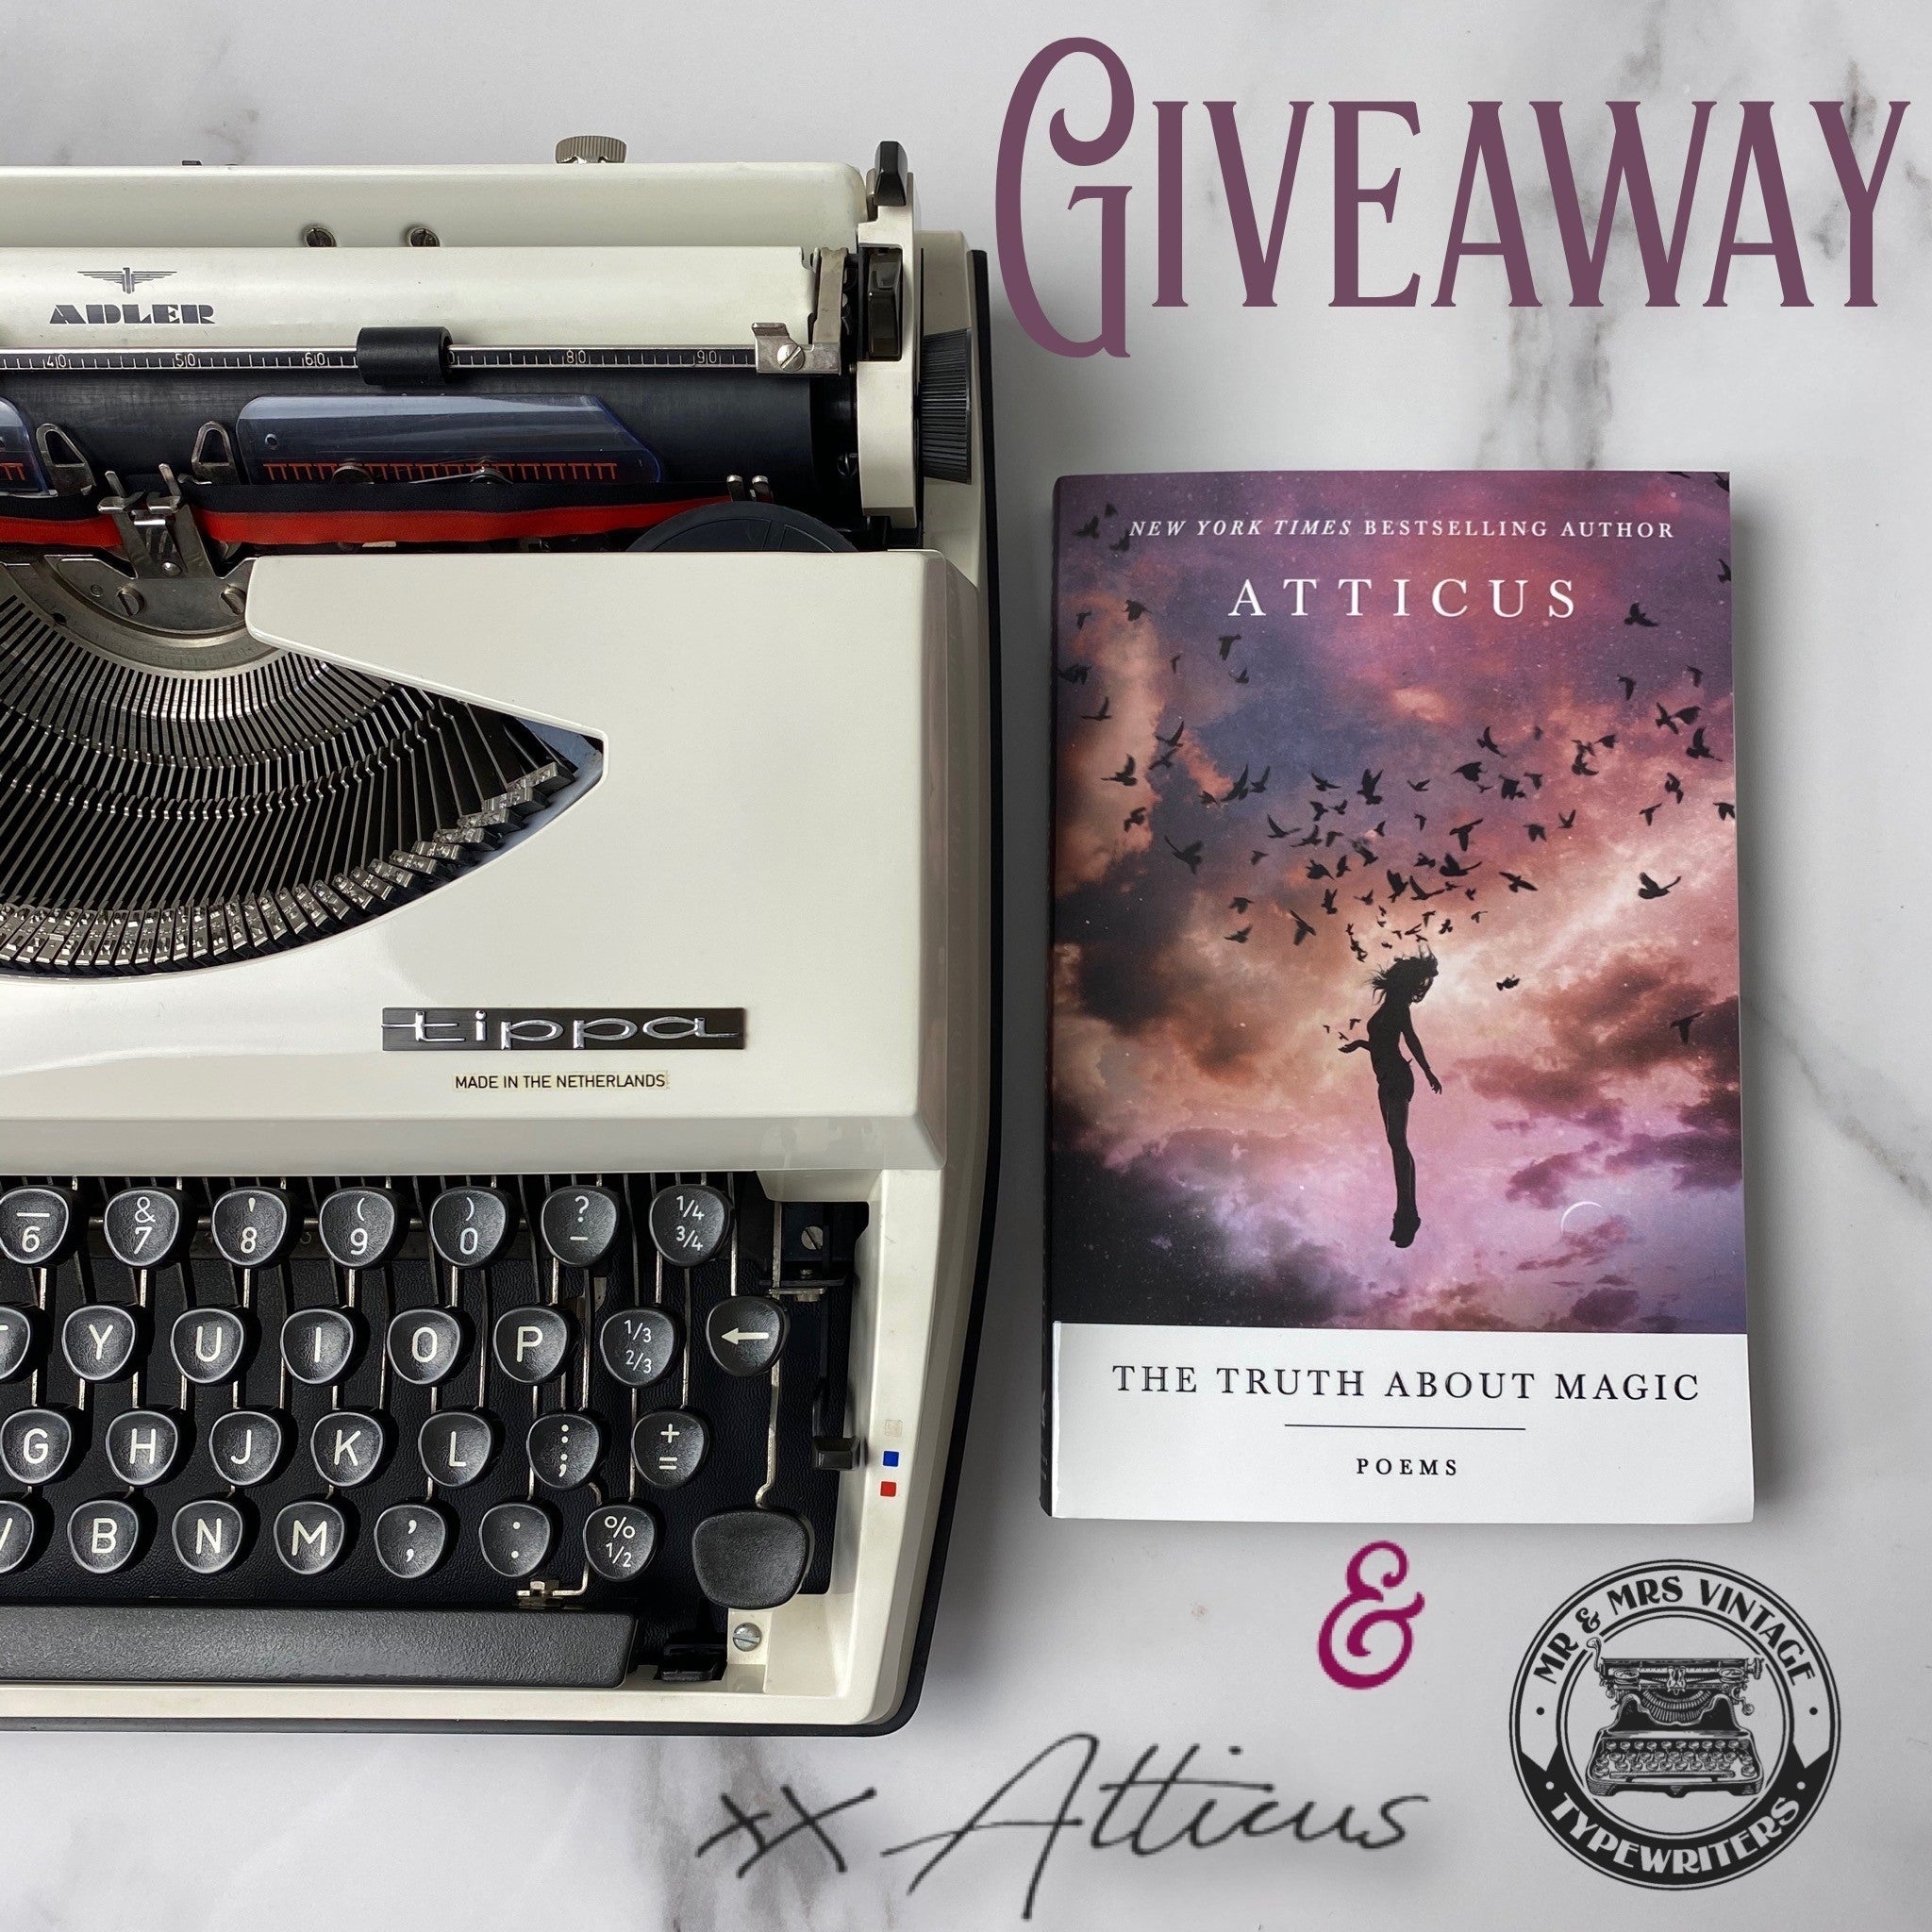 Adler Tippa Typewriter giveaway from Mr and Mrs Vintage and atticus poetry.